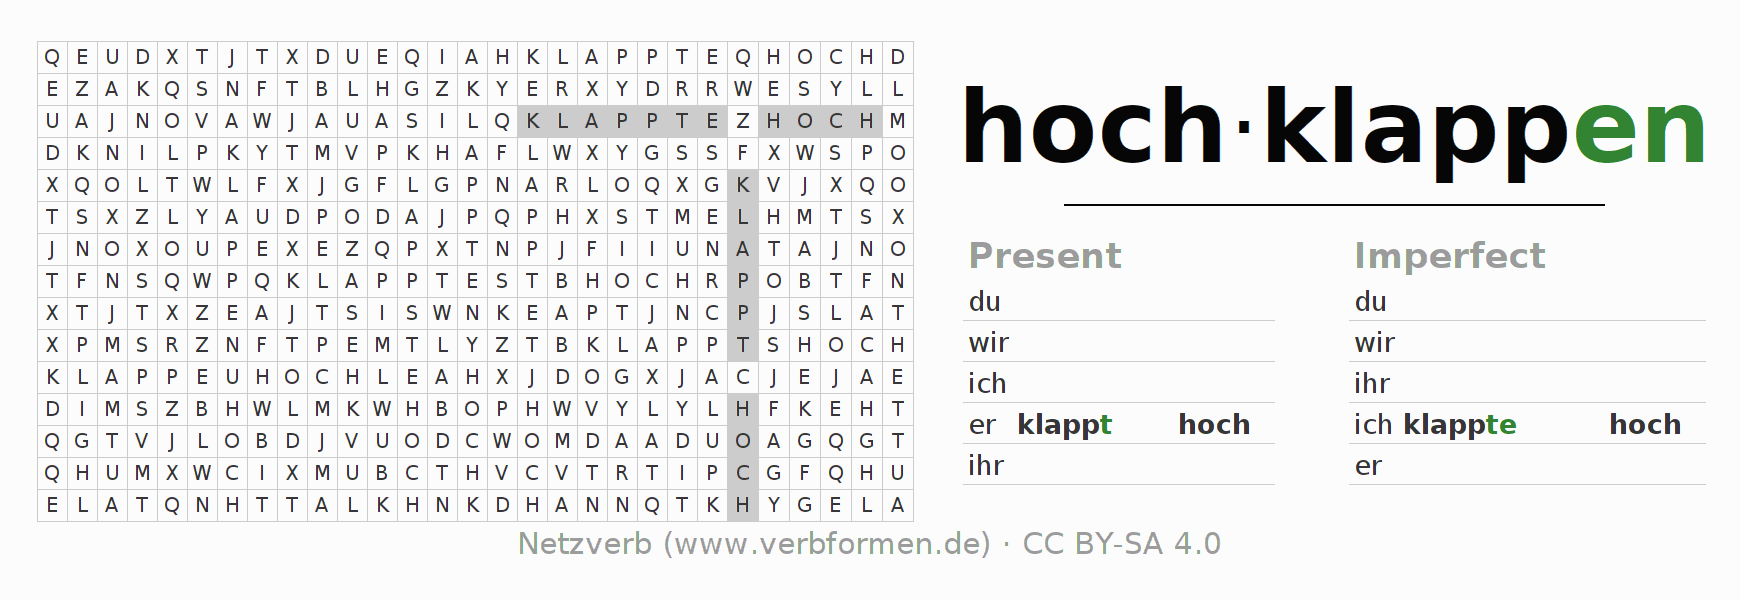 Word search puzzle for the conjugation of the verb hochklappen (hat)